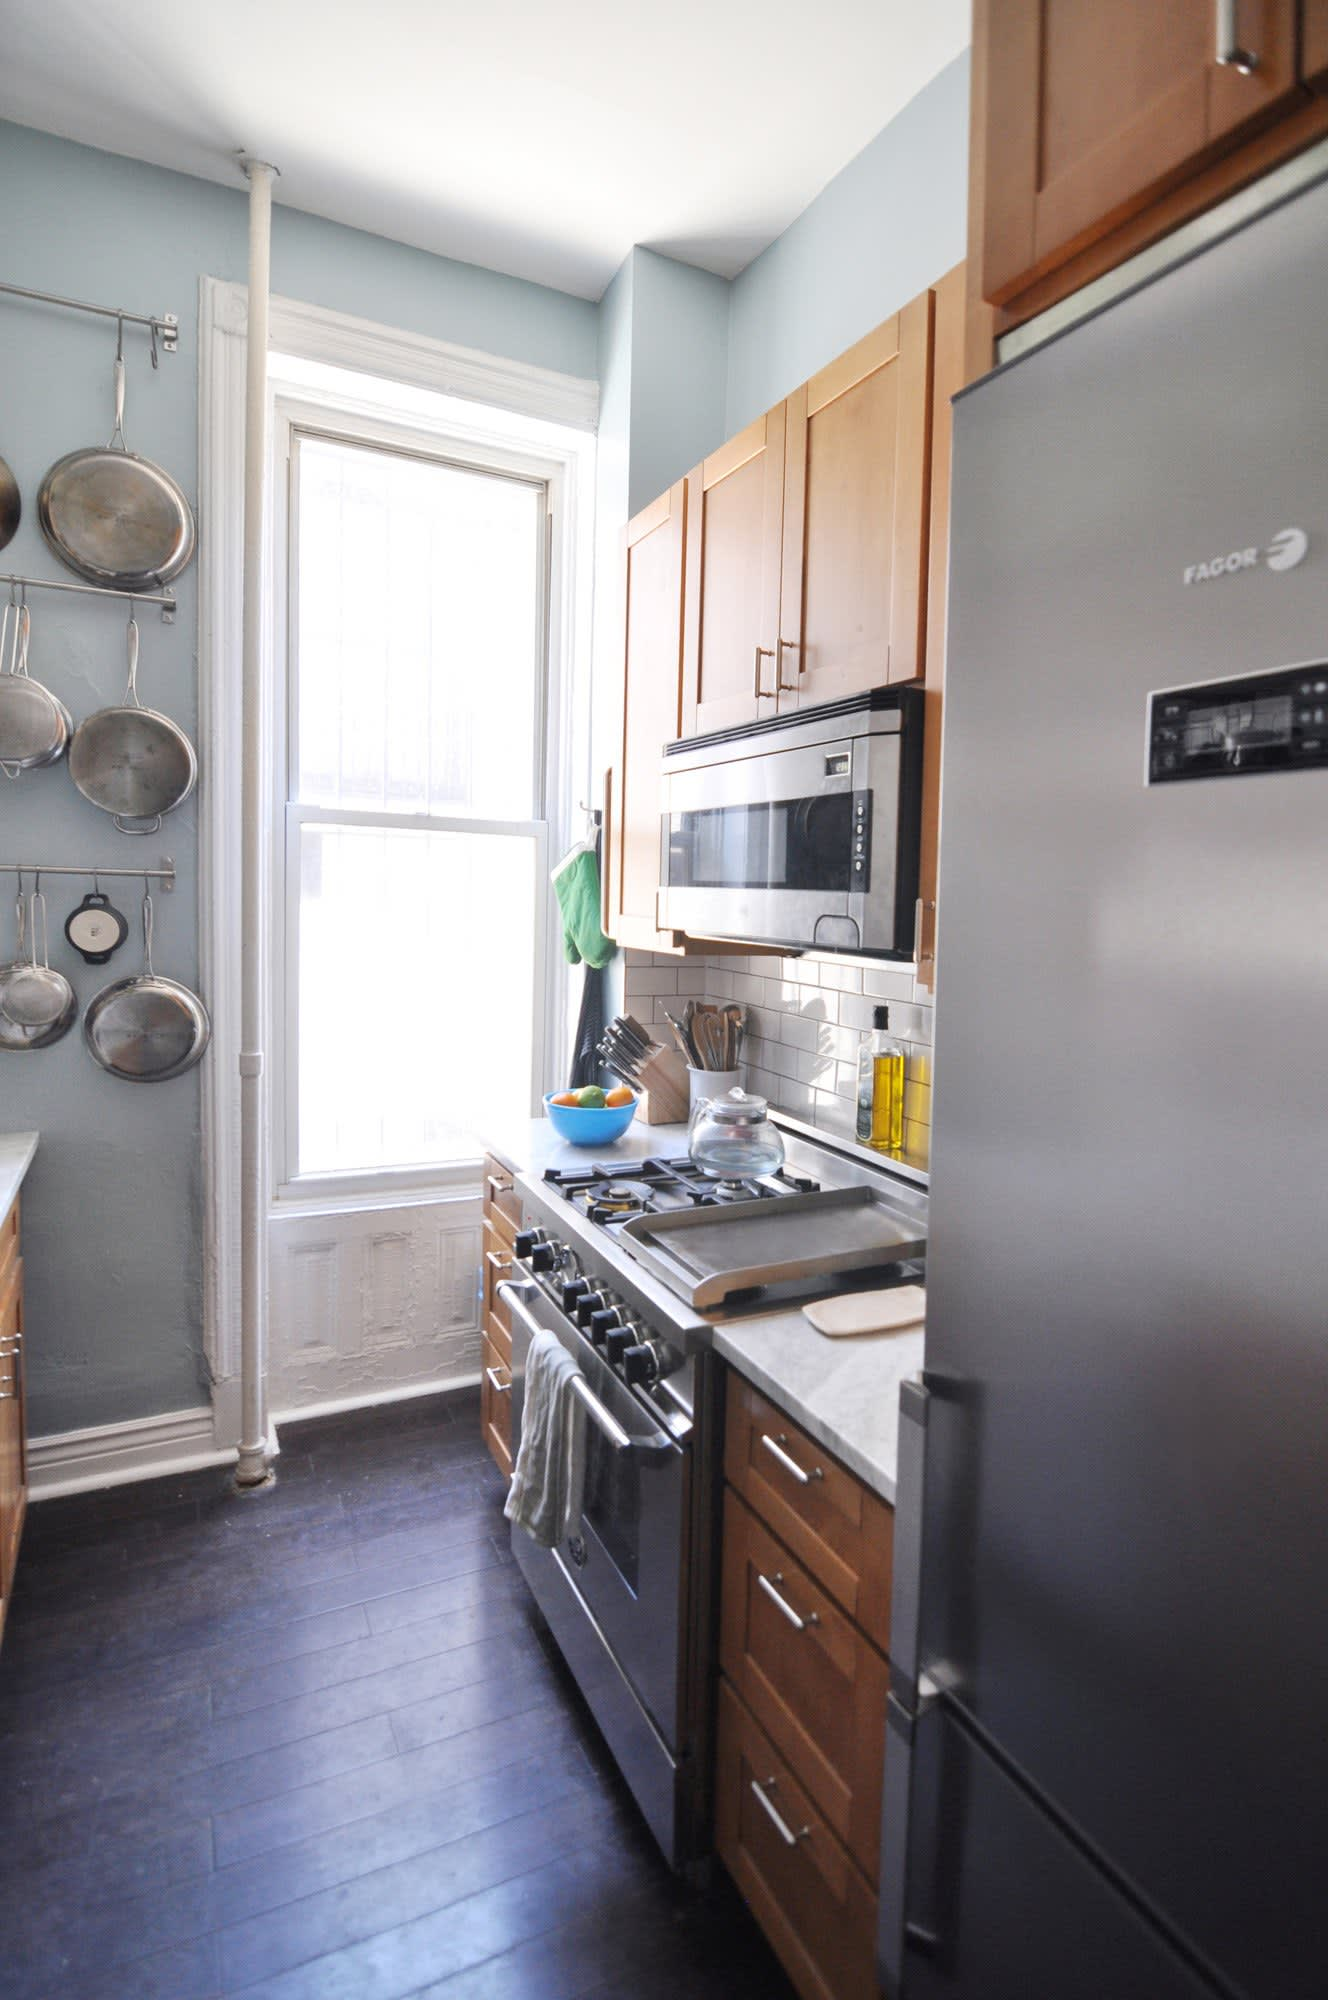 20 Paint Colors We Love in the Kitchen: gallery image 3